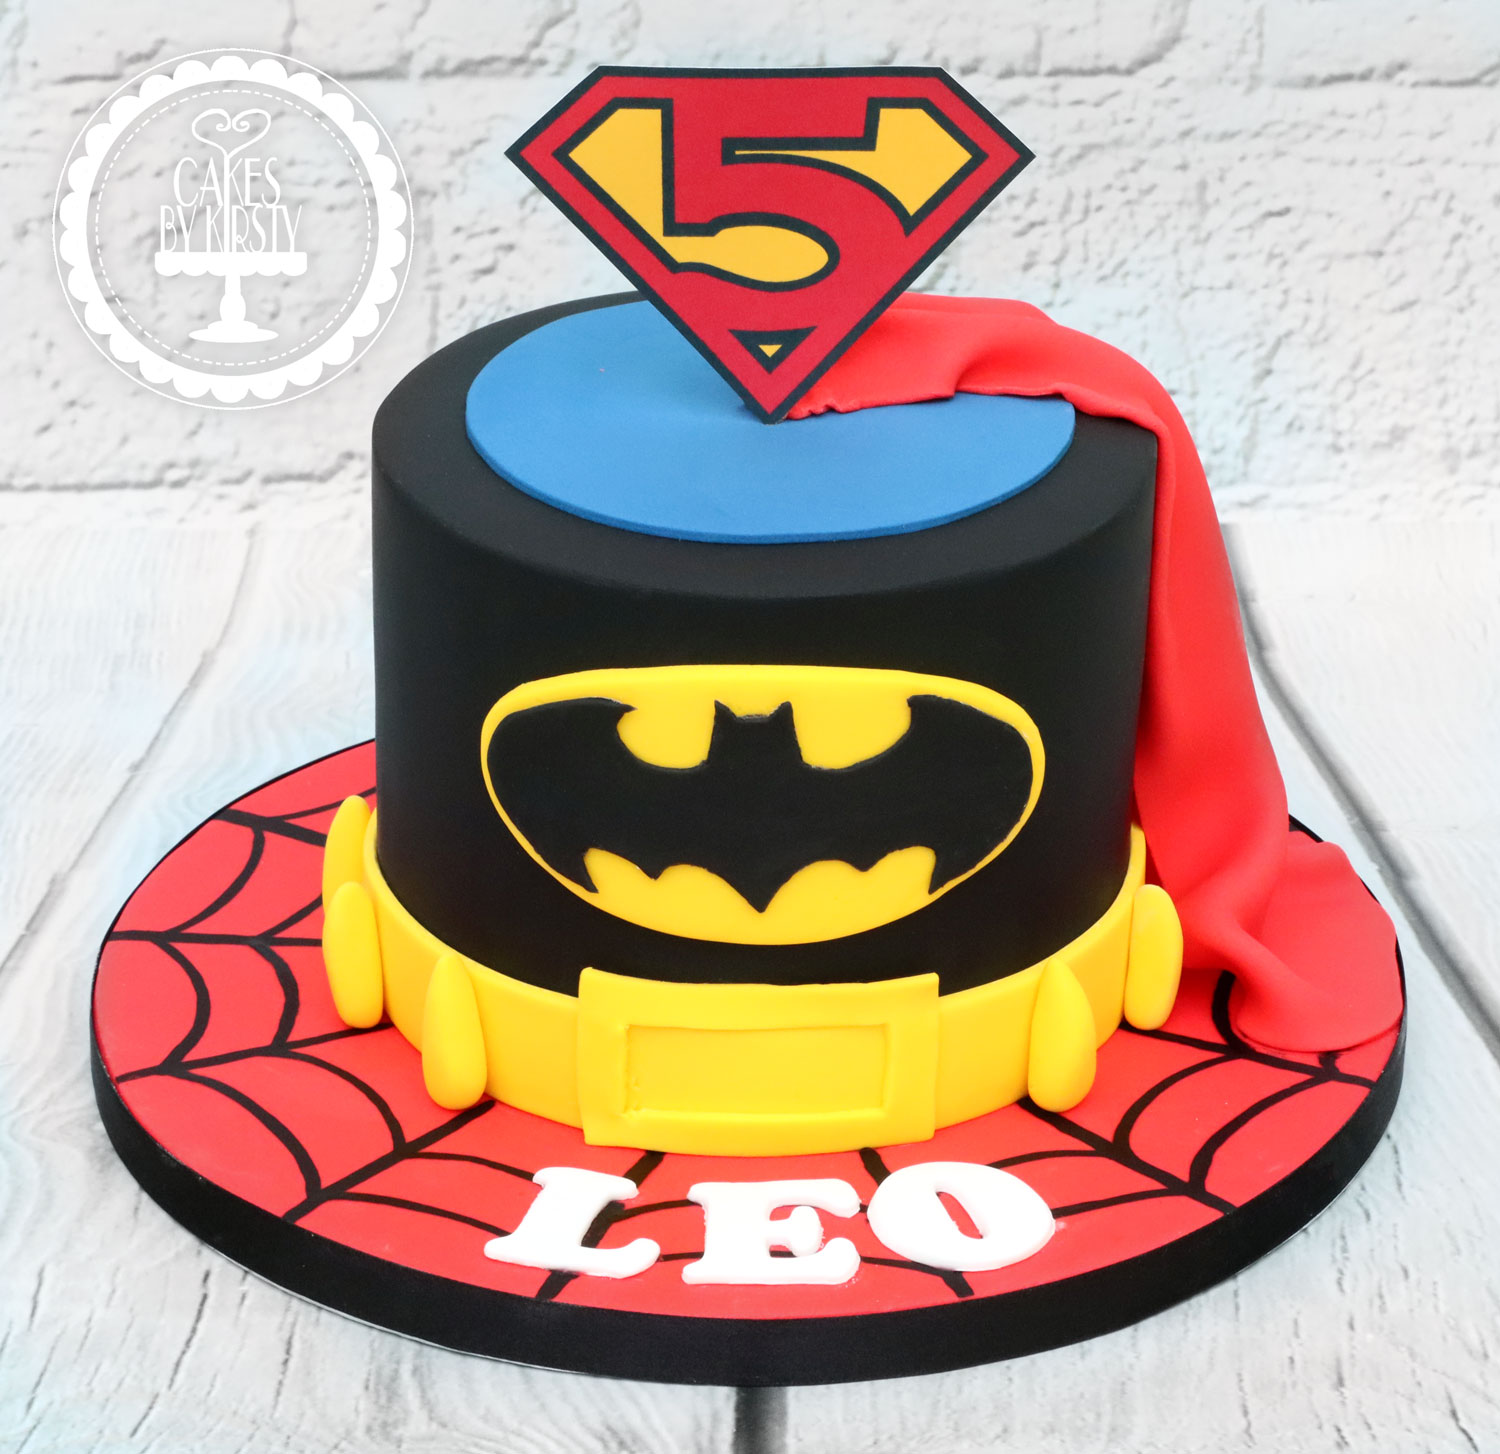 Phenomenal Cakes By Kirsty Childrens Cakes Funny Birthday Cards Online Elaedamsfinfo